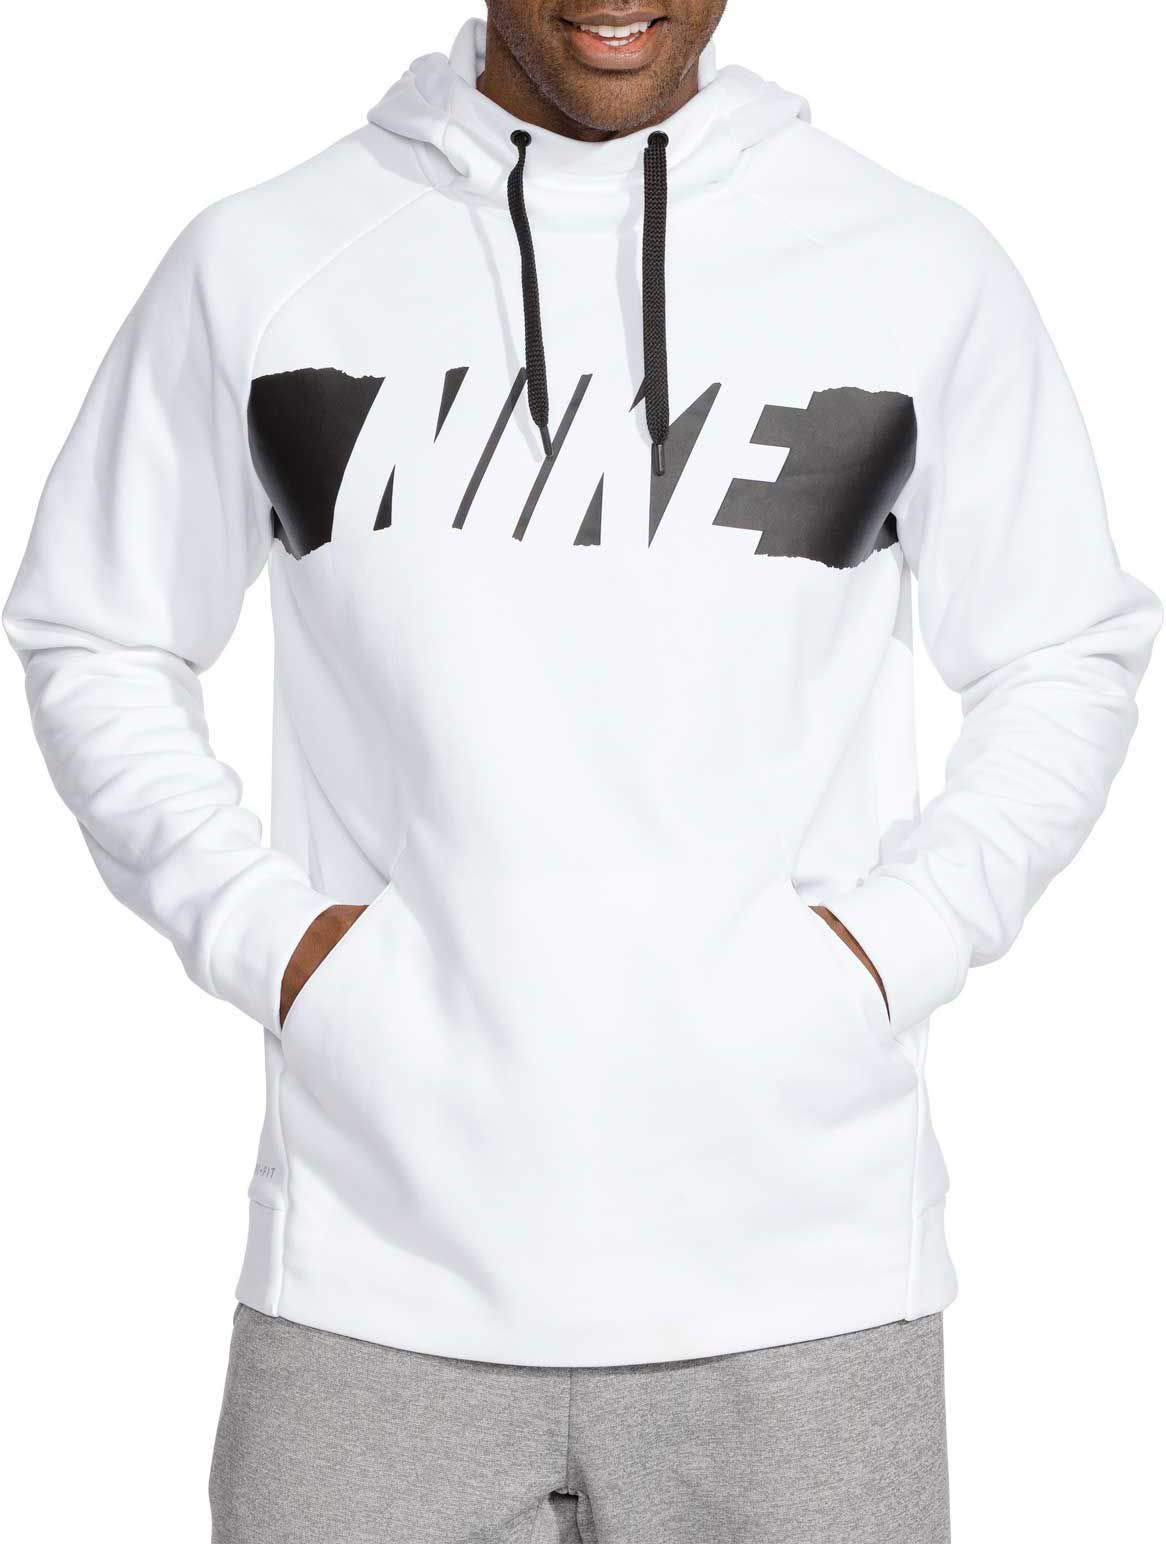 NIKE Men's Therma Graphic Training Hoodie (White/Black, XX-Large)